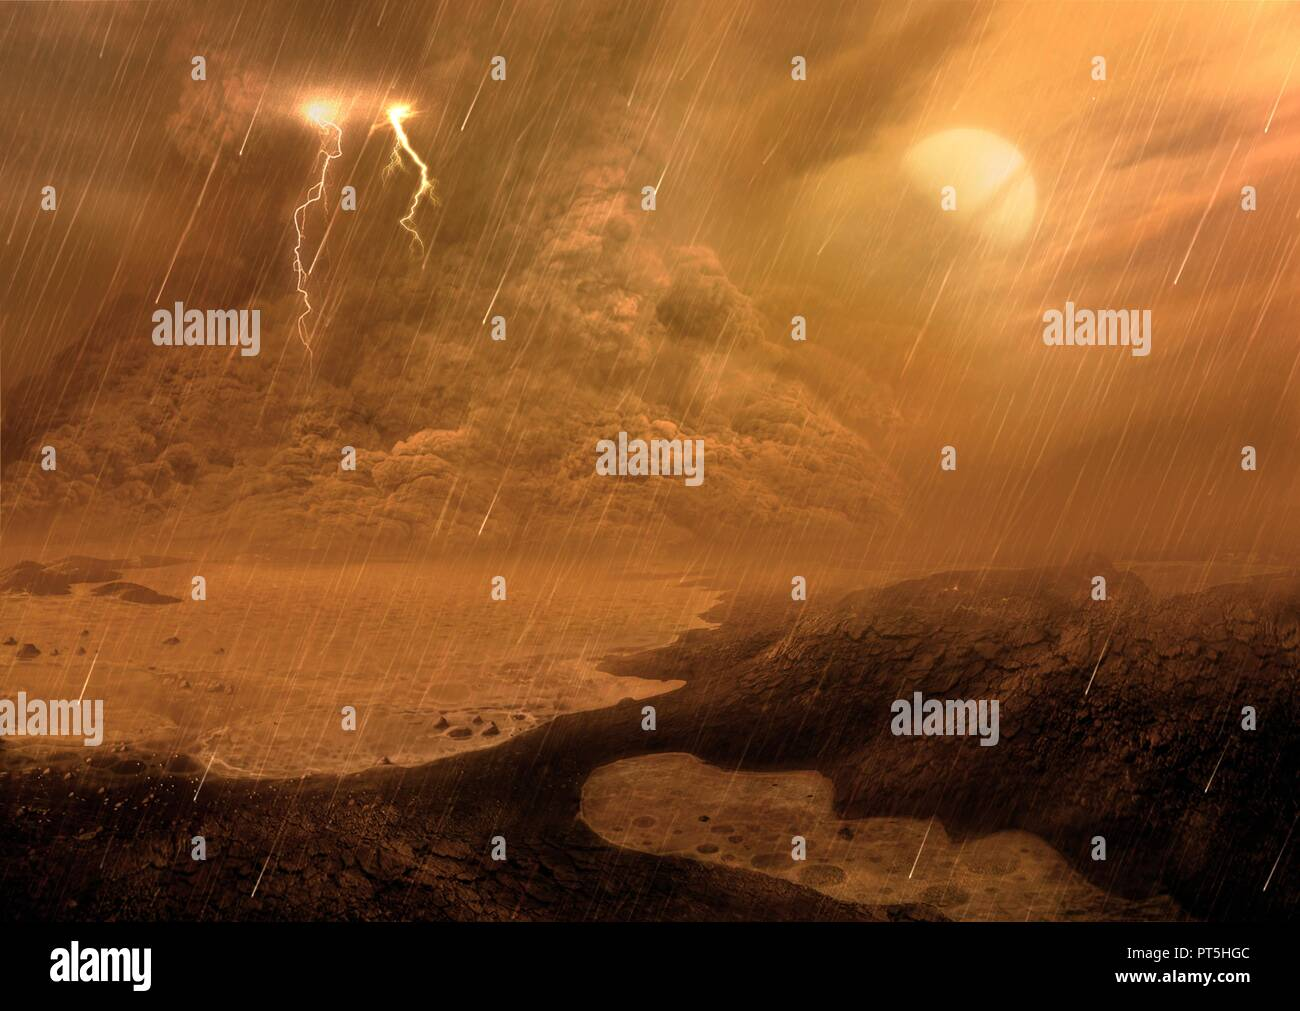 Dust storm of the surface of Titan, illustration. Titan, the largest moon of Saturn, is the only body in the known Solar System, aside from Earth, with liquid on its surface. But it's not water; it's liquid hydrocarbons. It's also the only satellite with a substantial atmosphere, made mostly of nitrogen. Scientists studying data from the Cassini mission by ESA have found dust storms raging around the moon's equator, as depicted in this illustration. Saturn is shown in the sky, although in reality it is unlikely it would be visible owing to the dense cloud coverage. Stock Photo